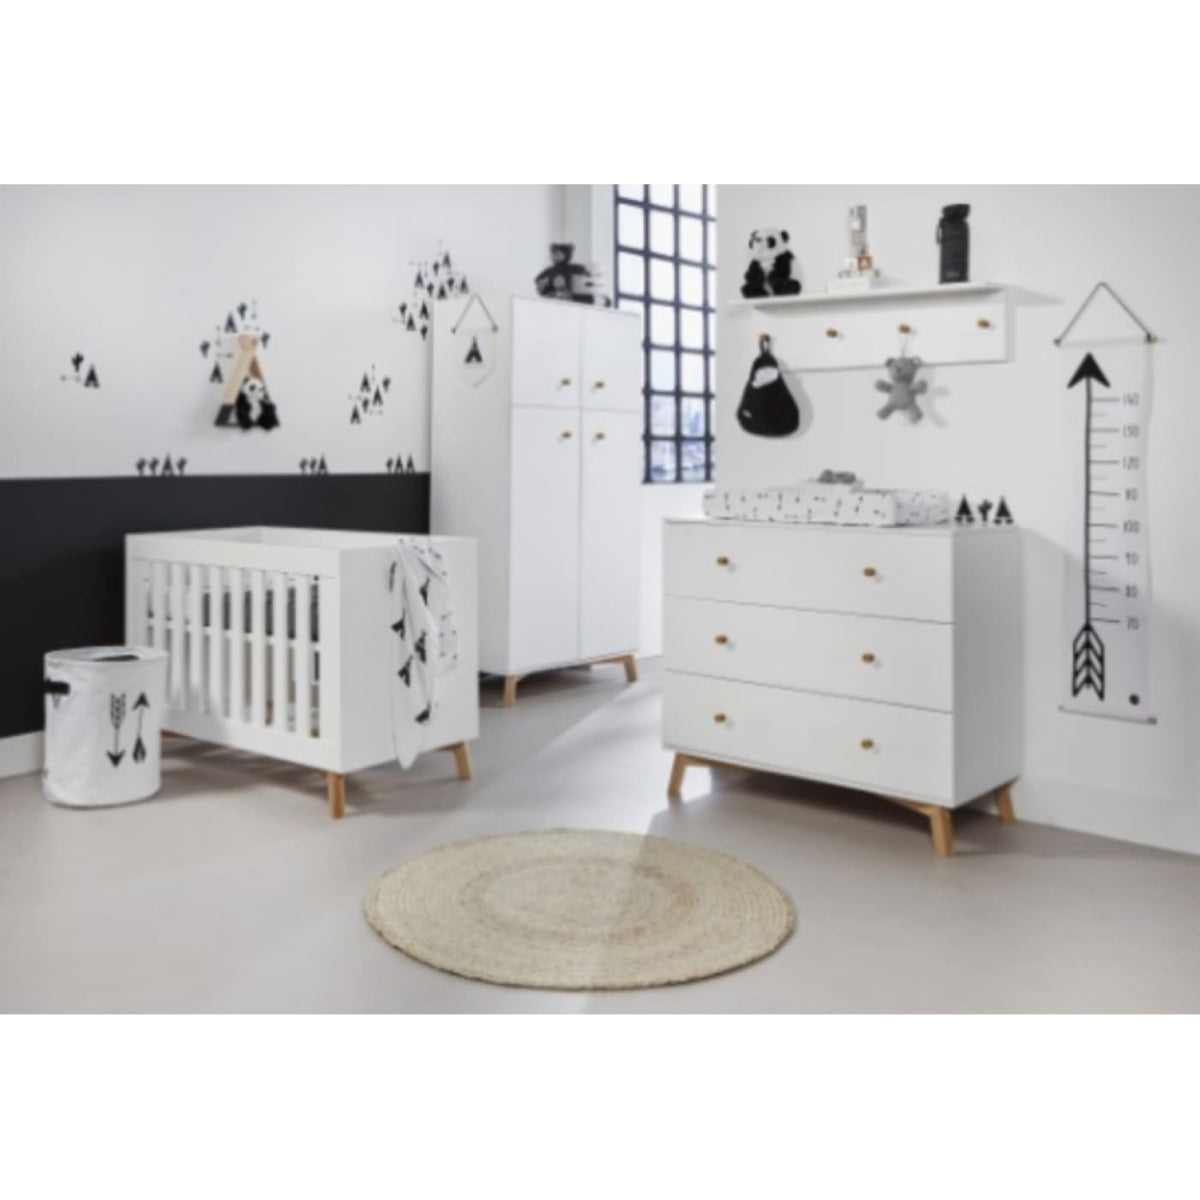 Love N Care Fjord Wardrobe - White - NURSERY & BEDTIME - WARDROBES